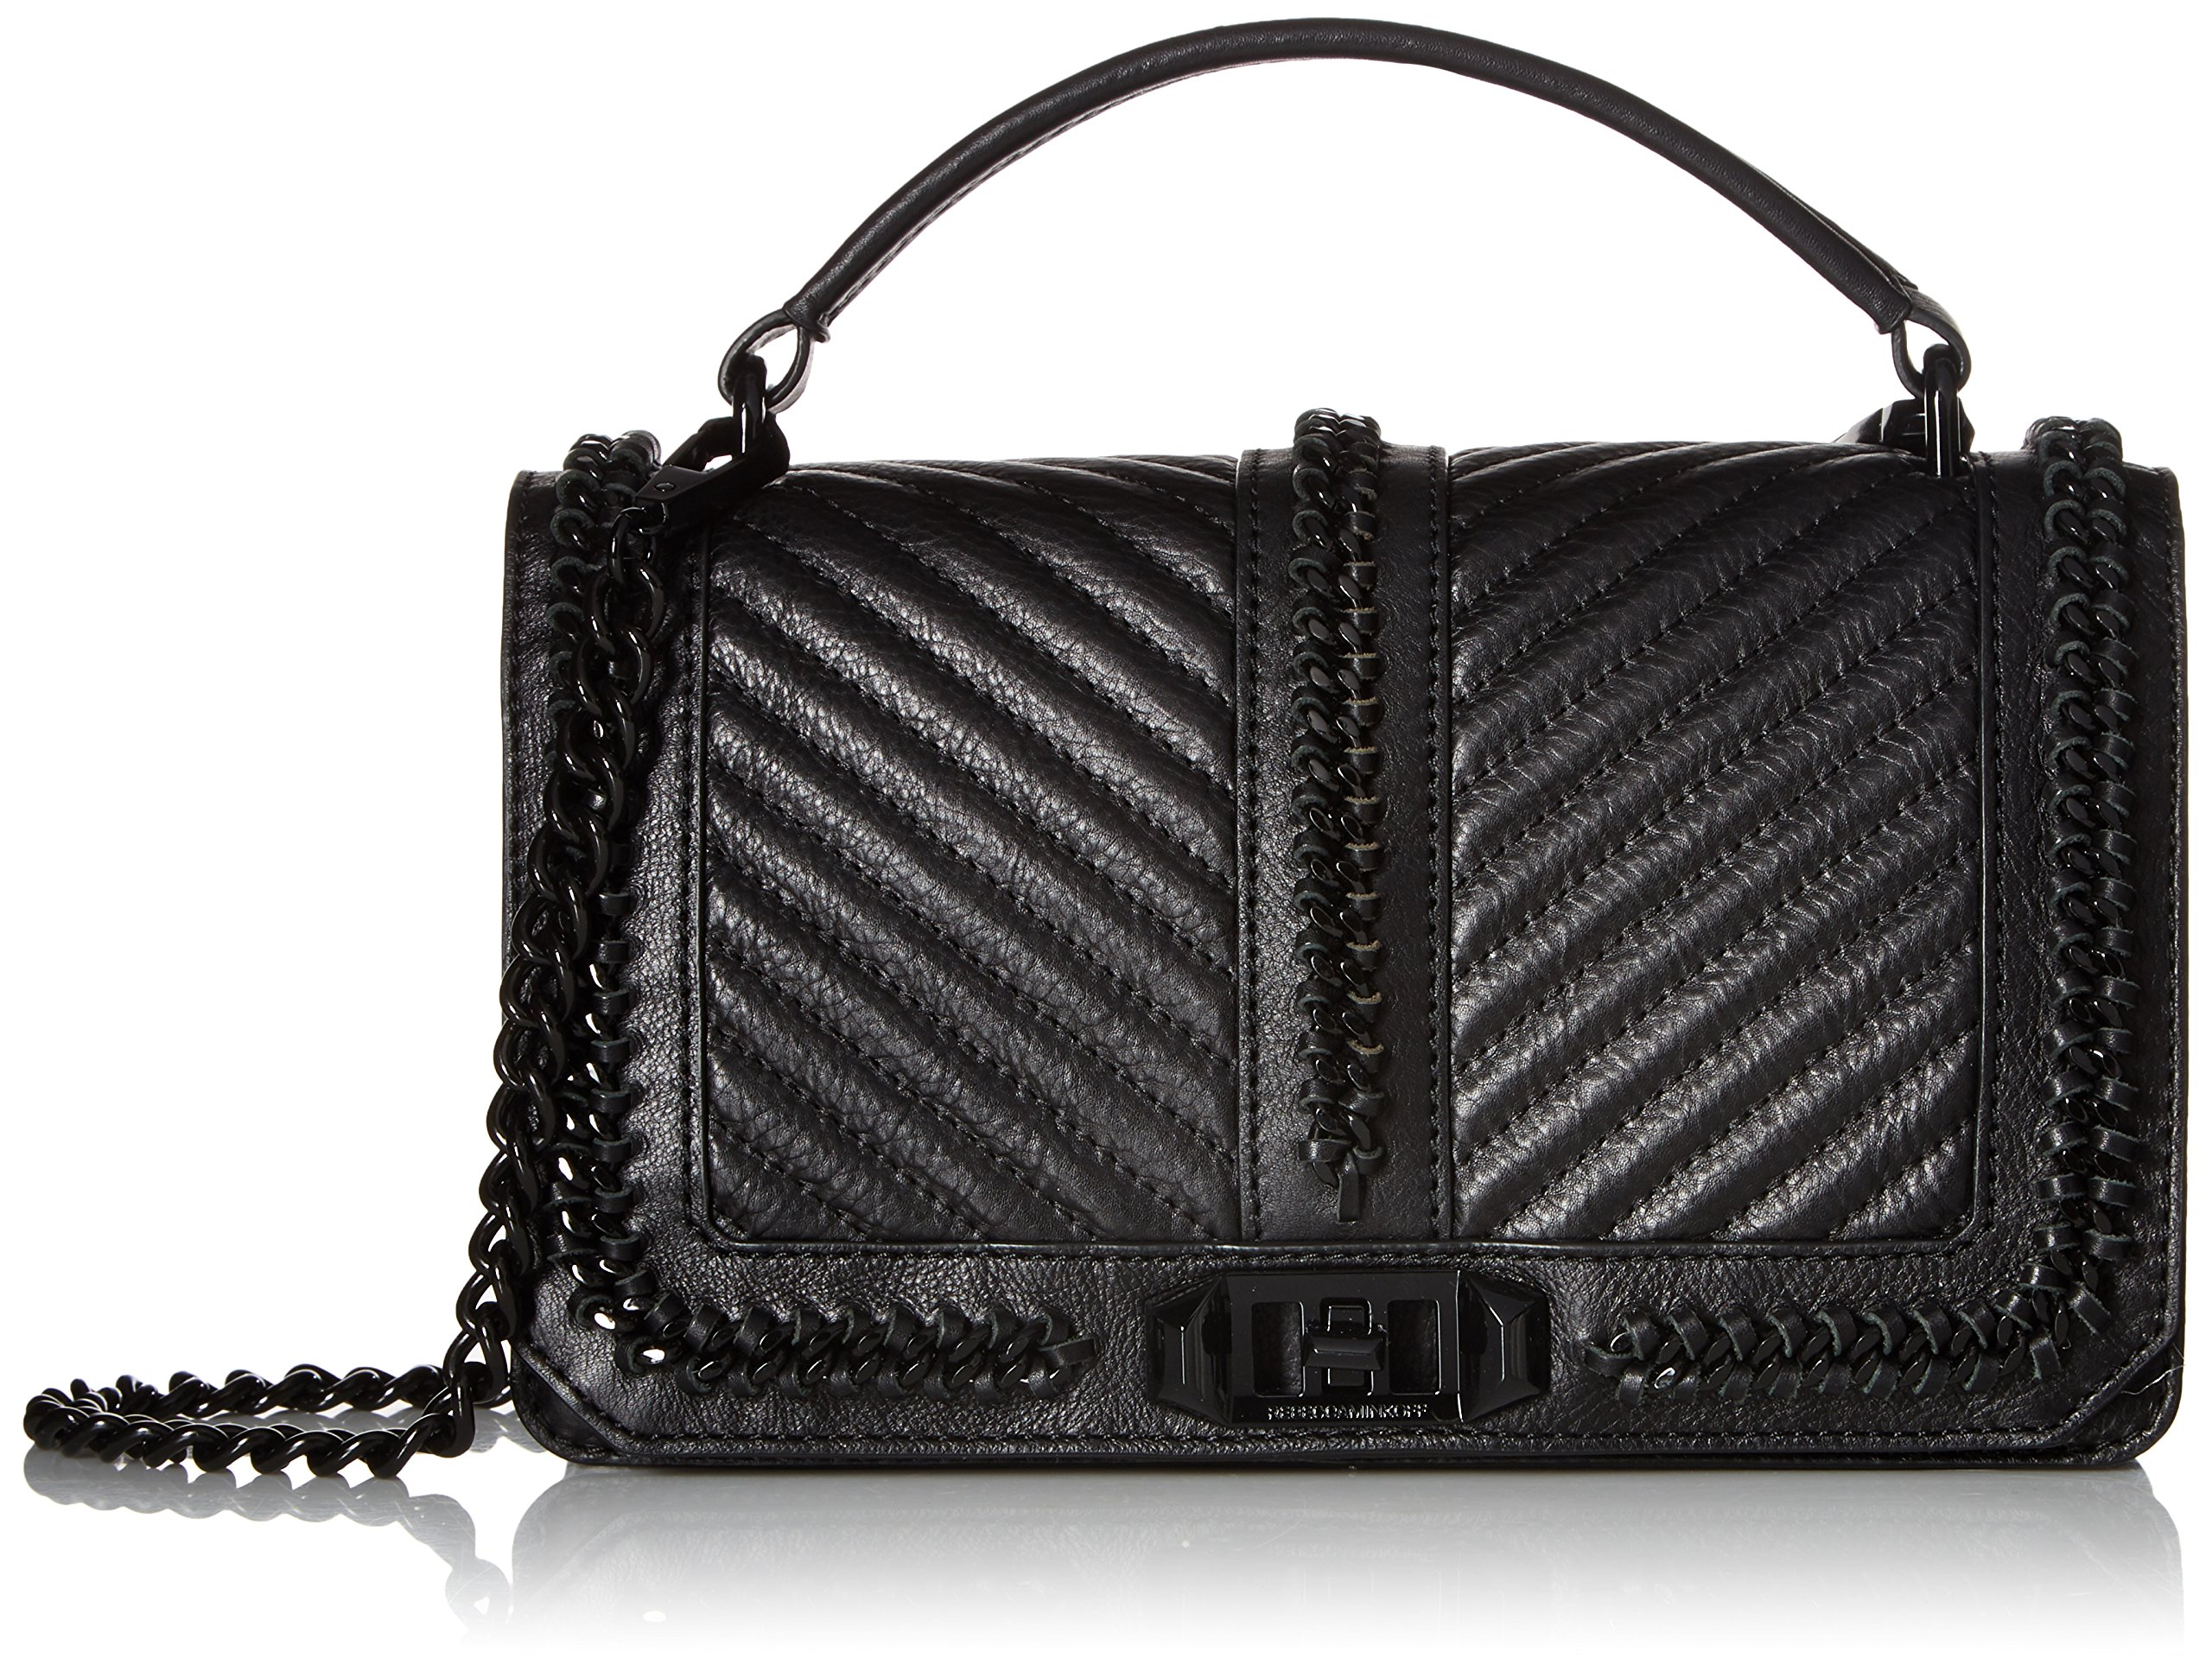 Rebecca Minkoff Love Crossbody with Chain and Top Handle, Black